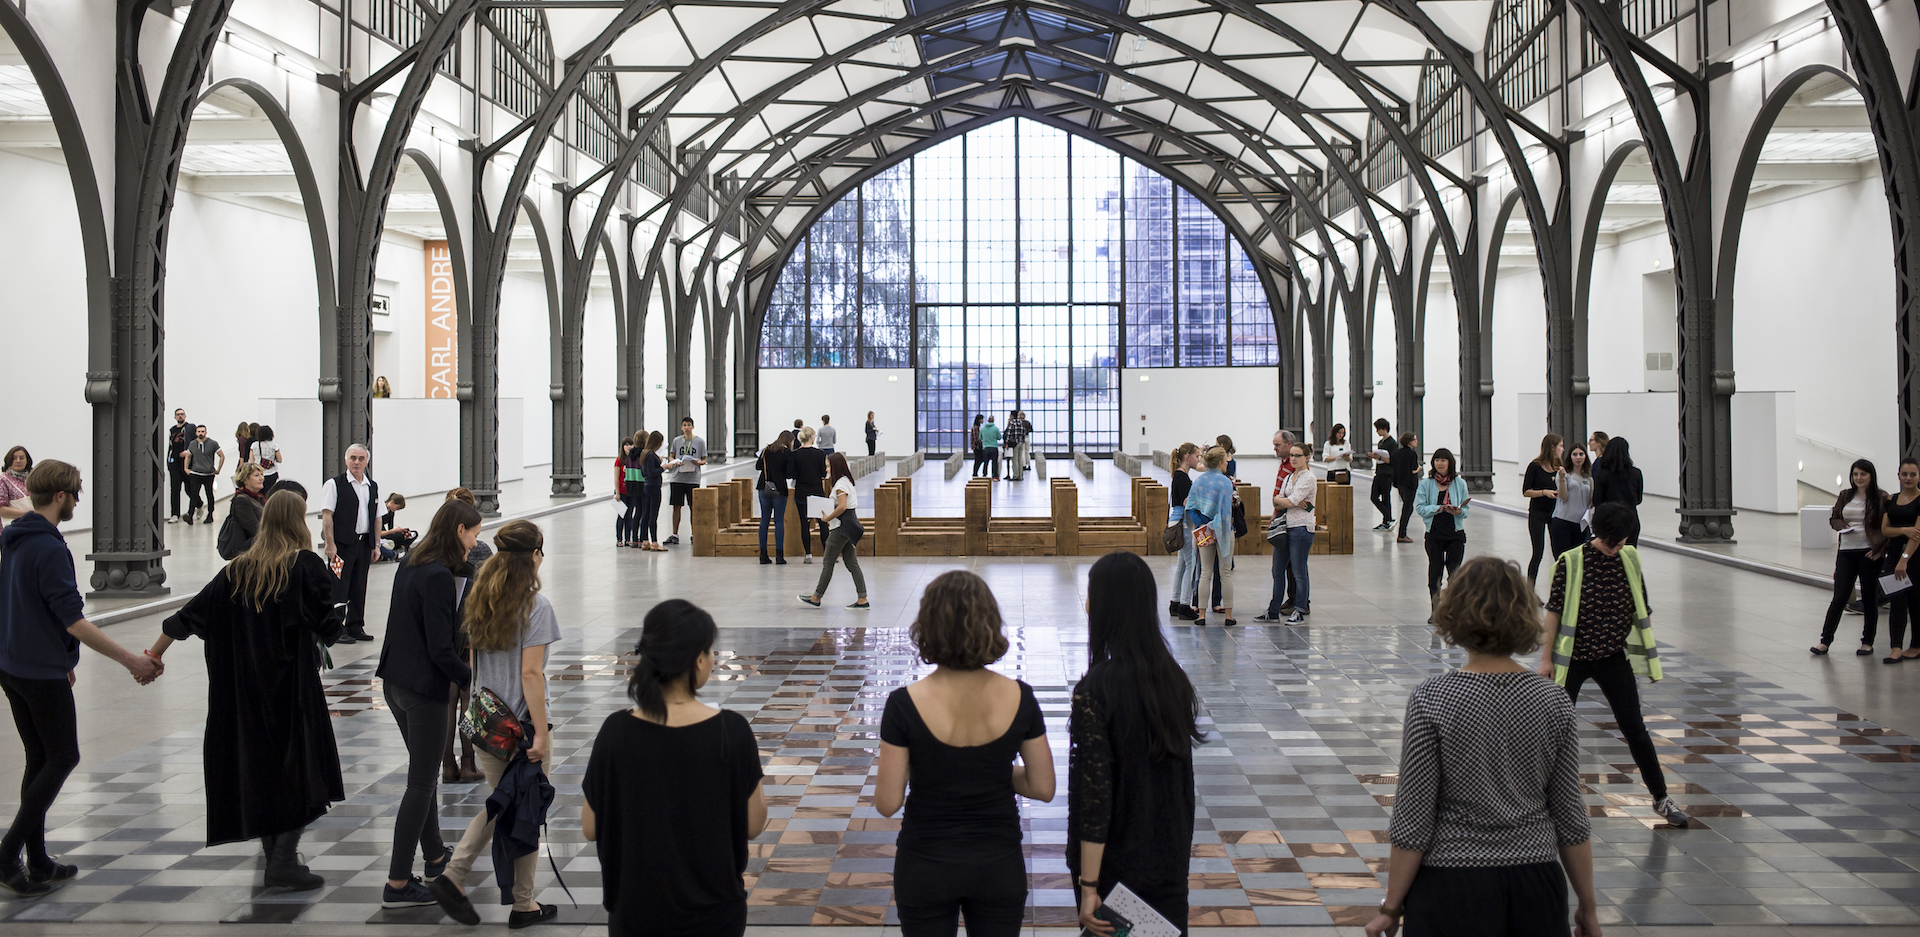 Students are in the main hall of the Hamburger Bahnhof – Museum für Gegenwart – Berlin in front of a work by Carl Andre.